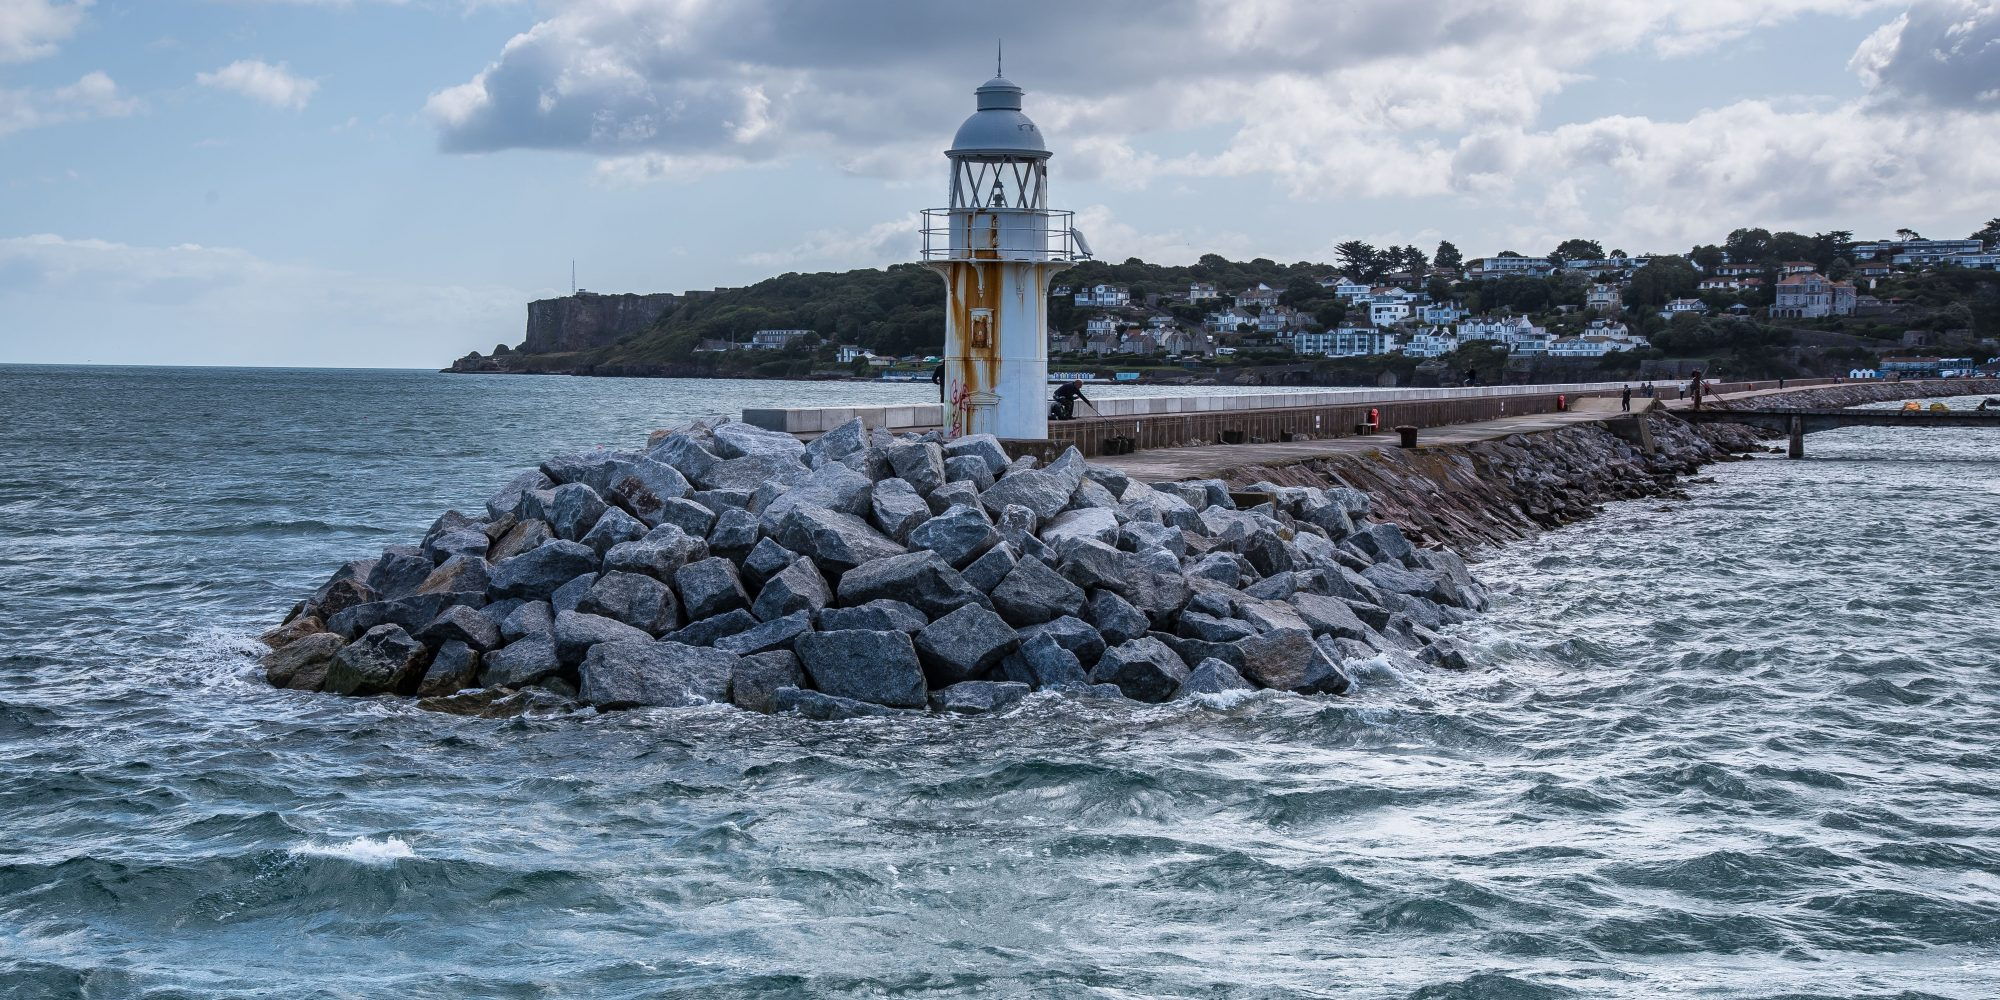 Lighthouse at end of a rocky pier, surrounded by a wild sea